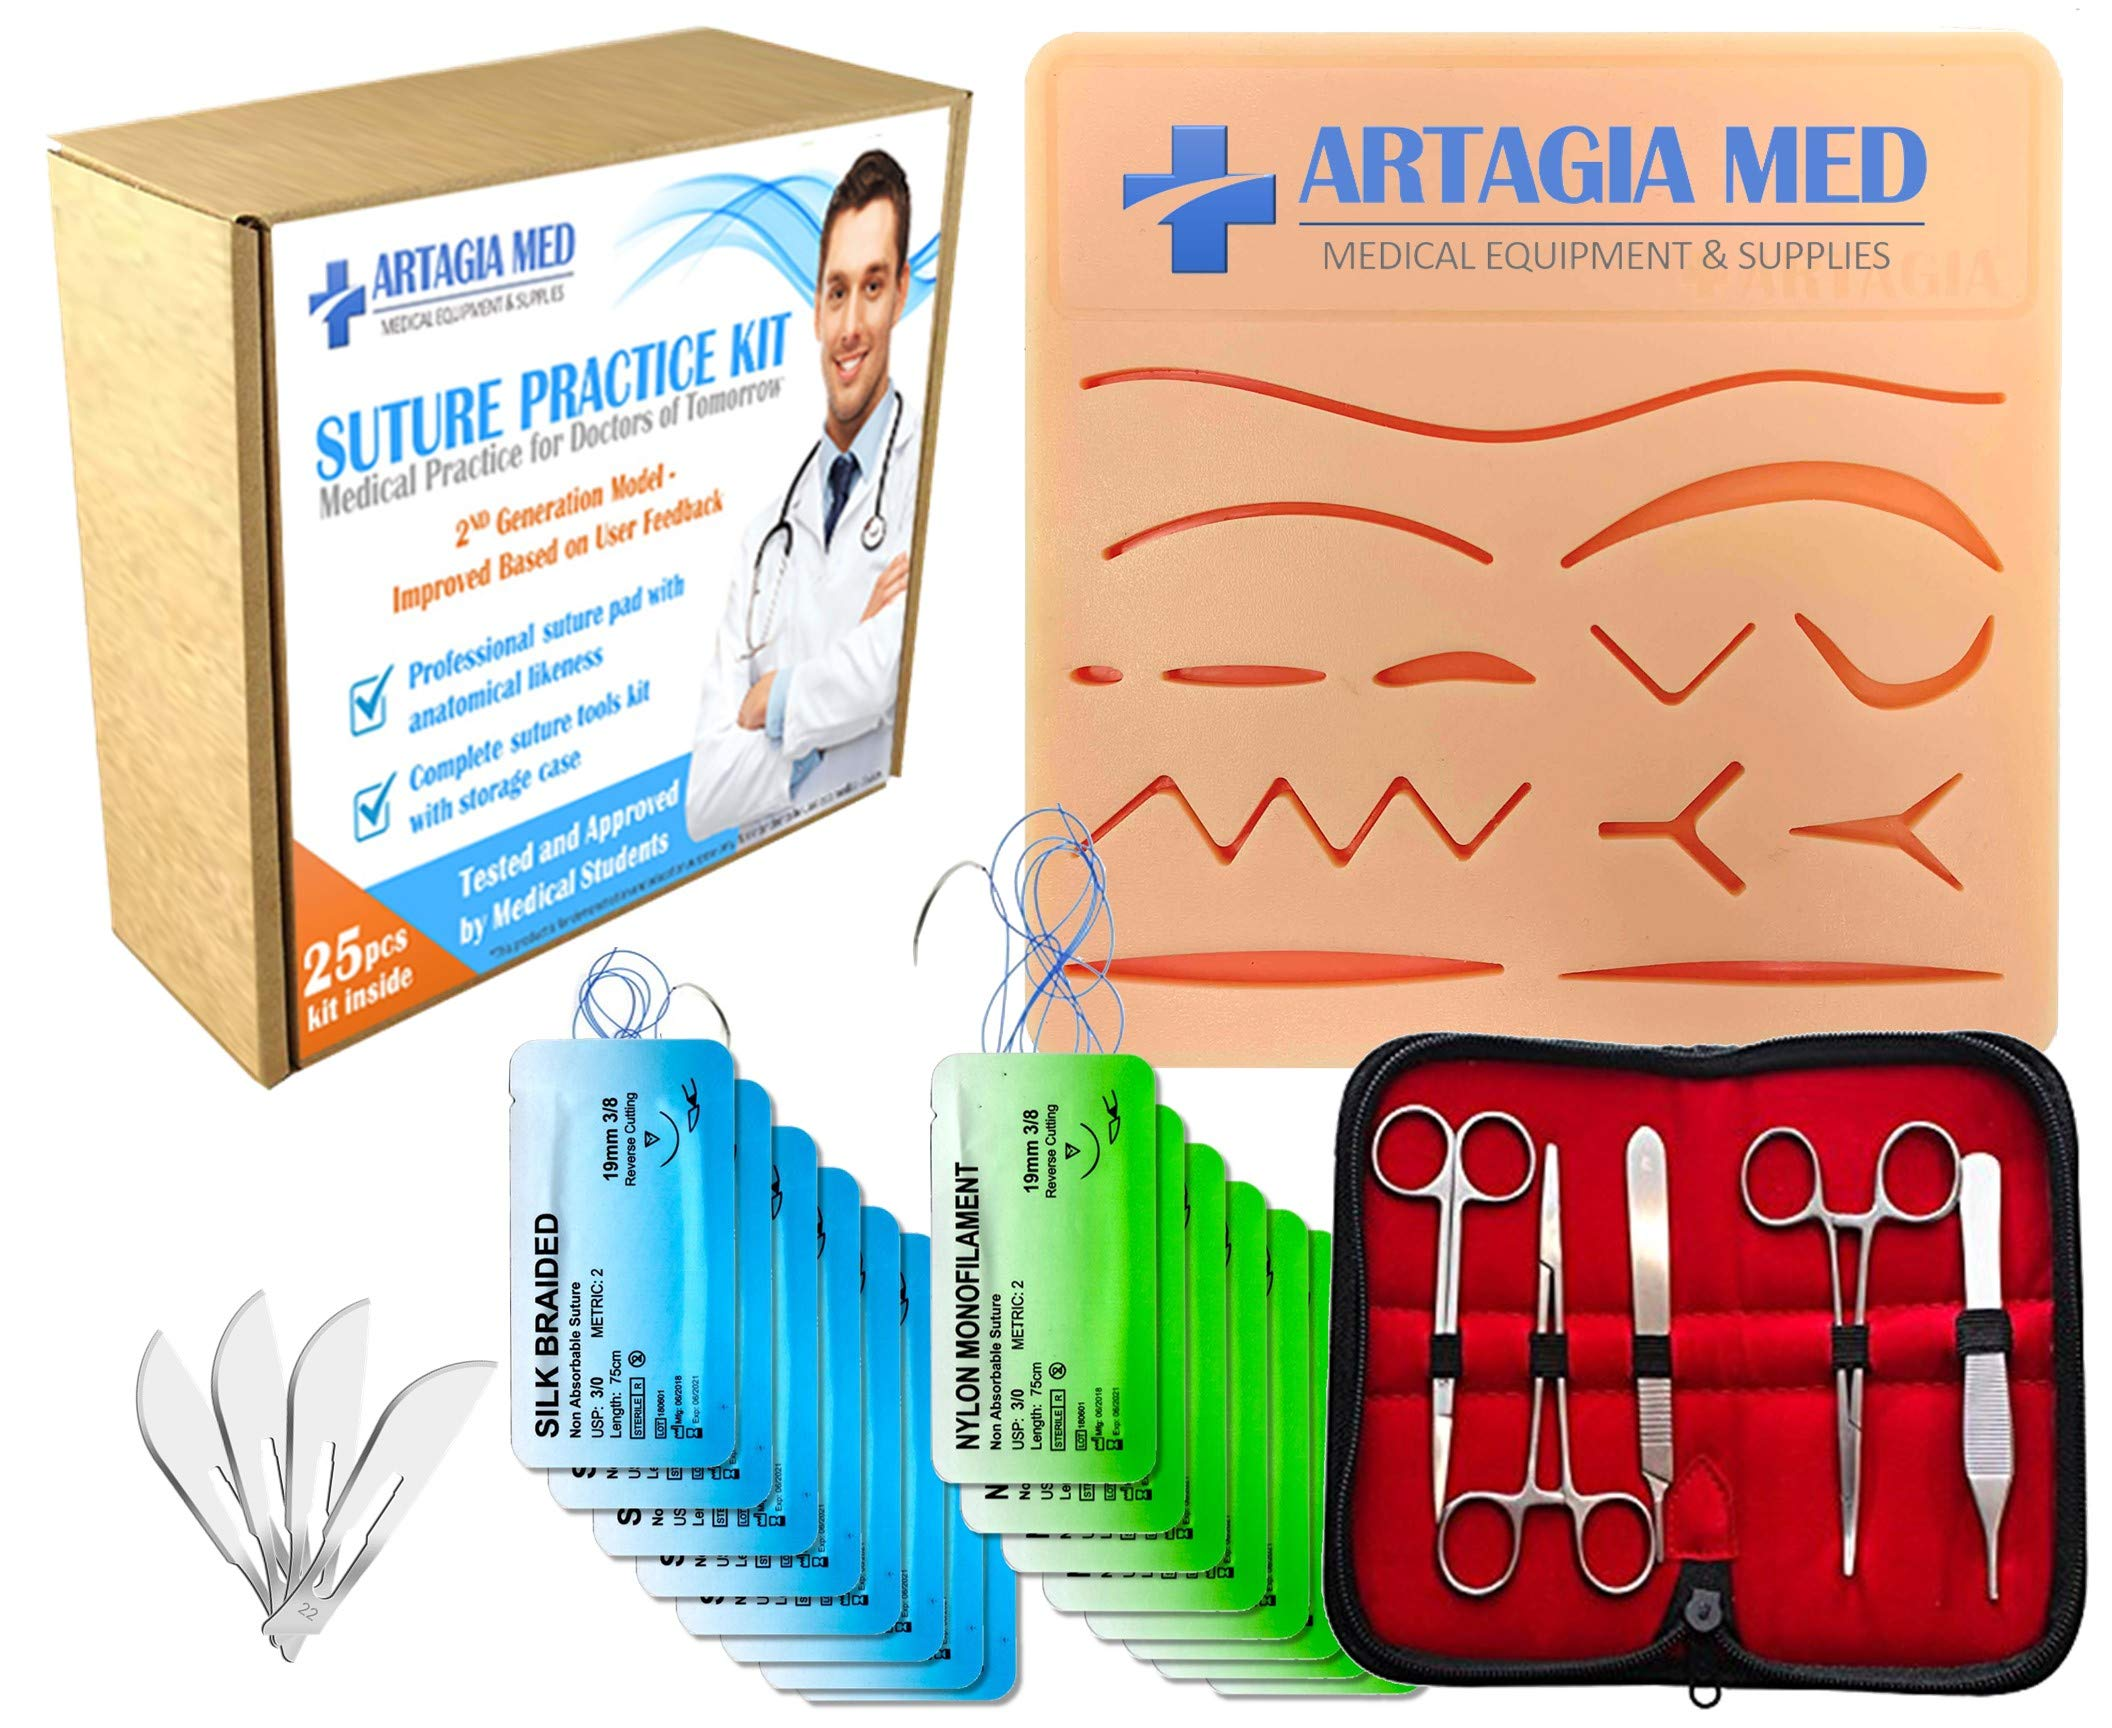 Complete Suture Practice Kit for Suture Training, Including Large Silicone Suture Pad with pre-Cut Wounds and Suture Tool kit (25 Pieces) by ARTAGIA. 2nd Generation Model. (Education Use Only) by ARTAGIA